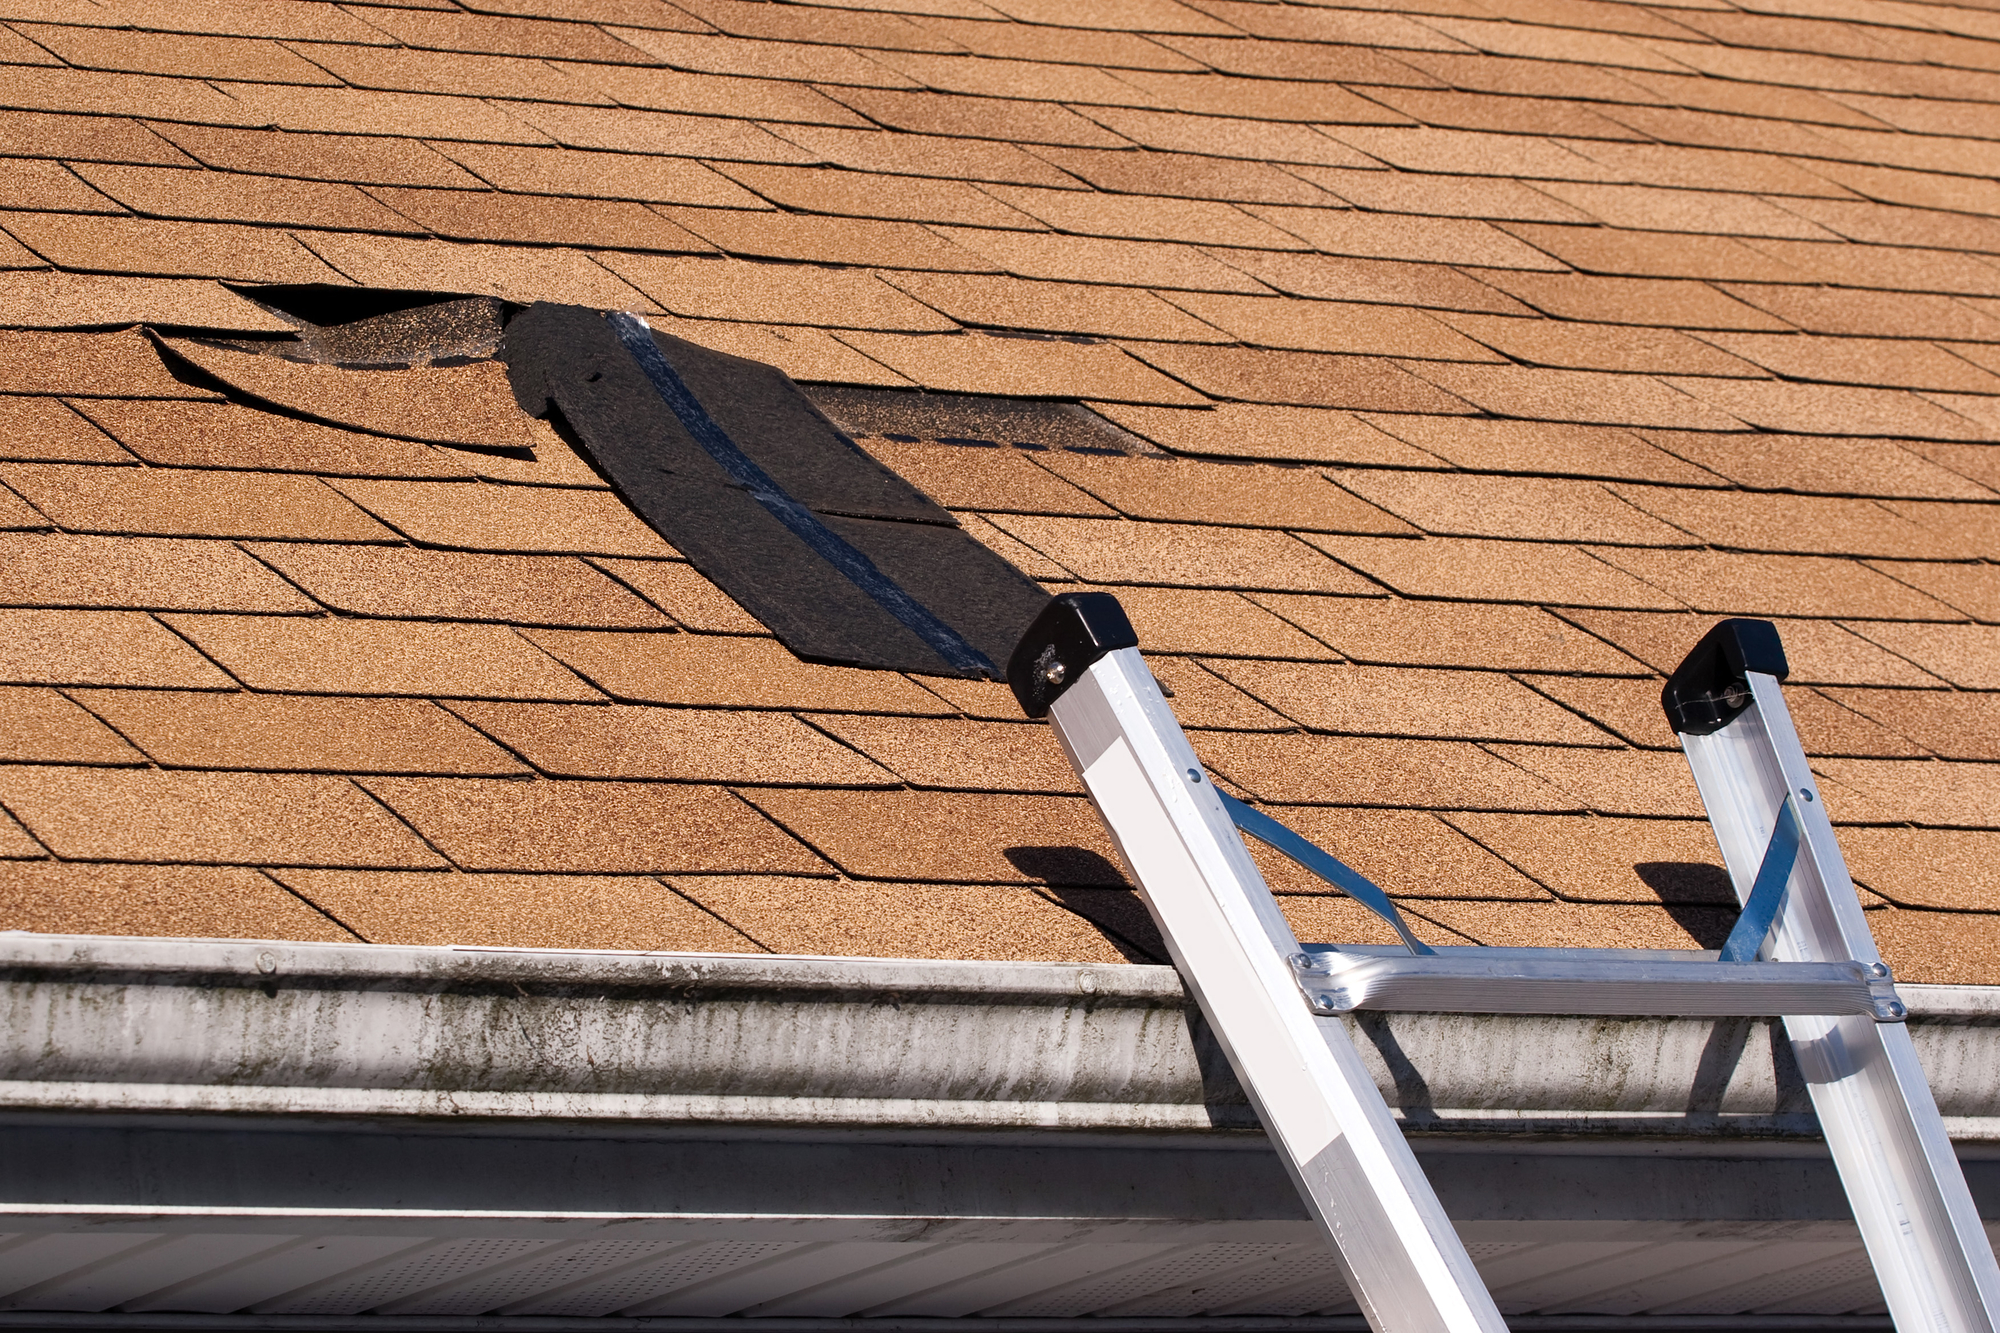 Shingles torn after storm